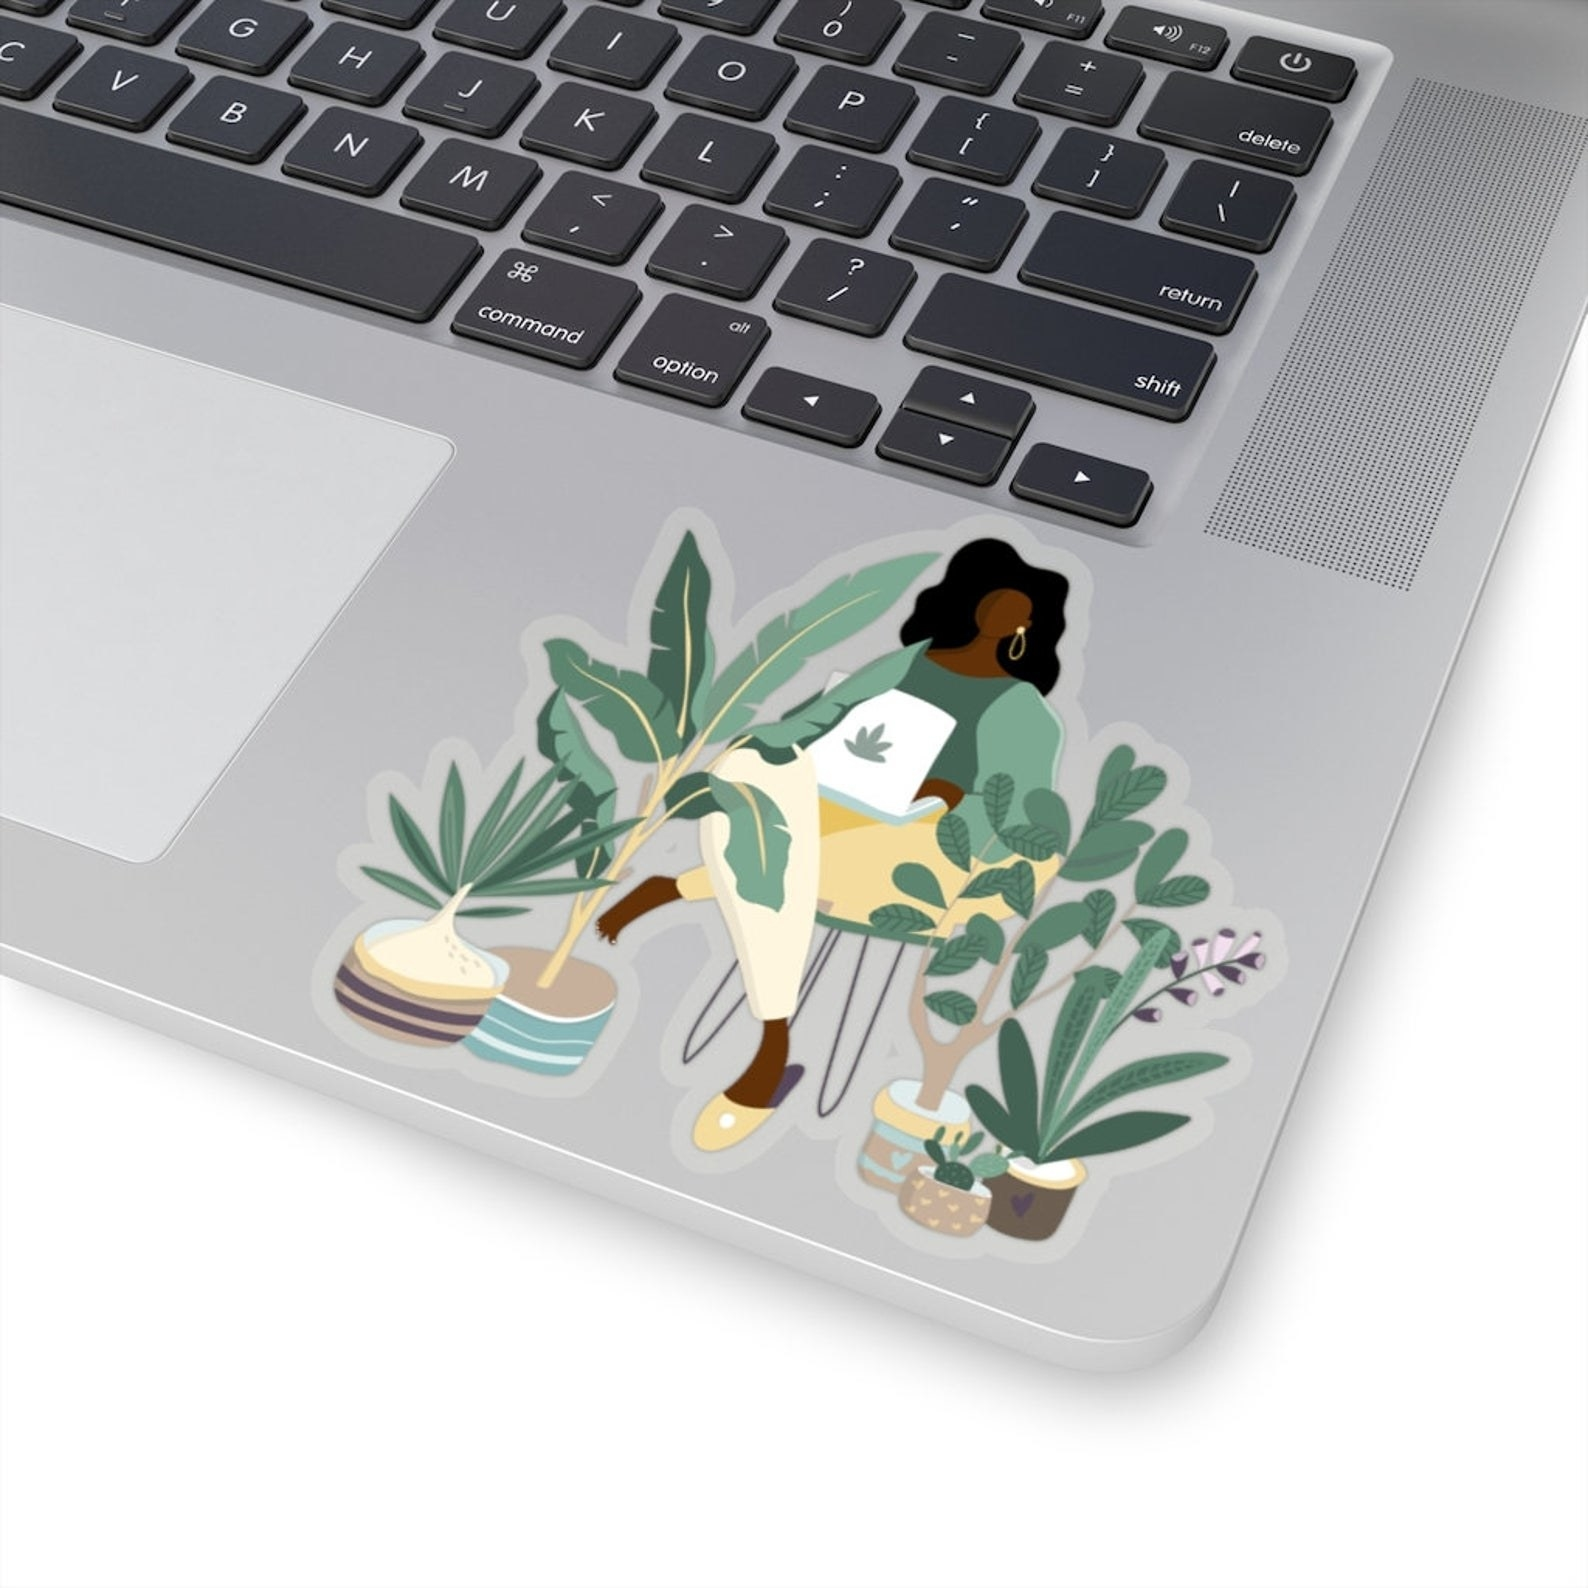 A sticker that shows a woman sitting at a laptop with a plant sticker decal on it and other green plants of different sizes surrounding her.